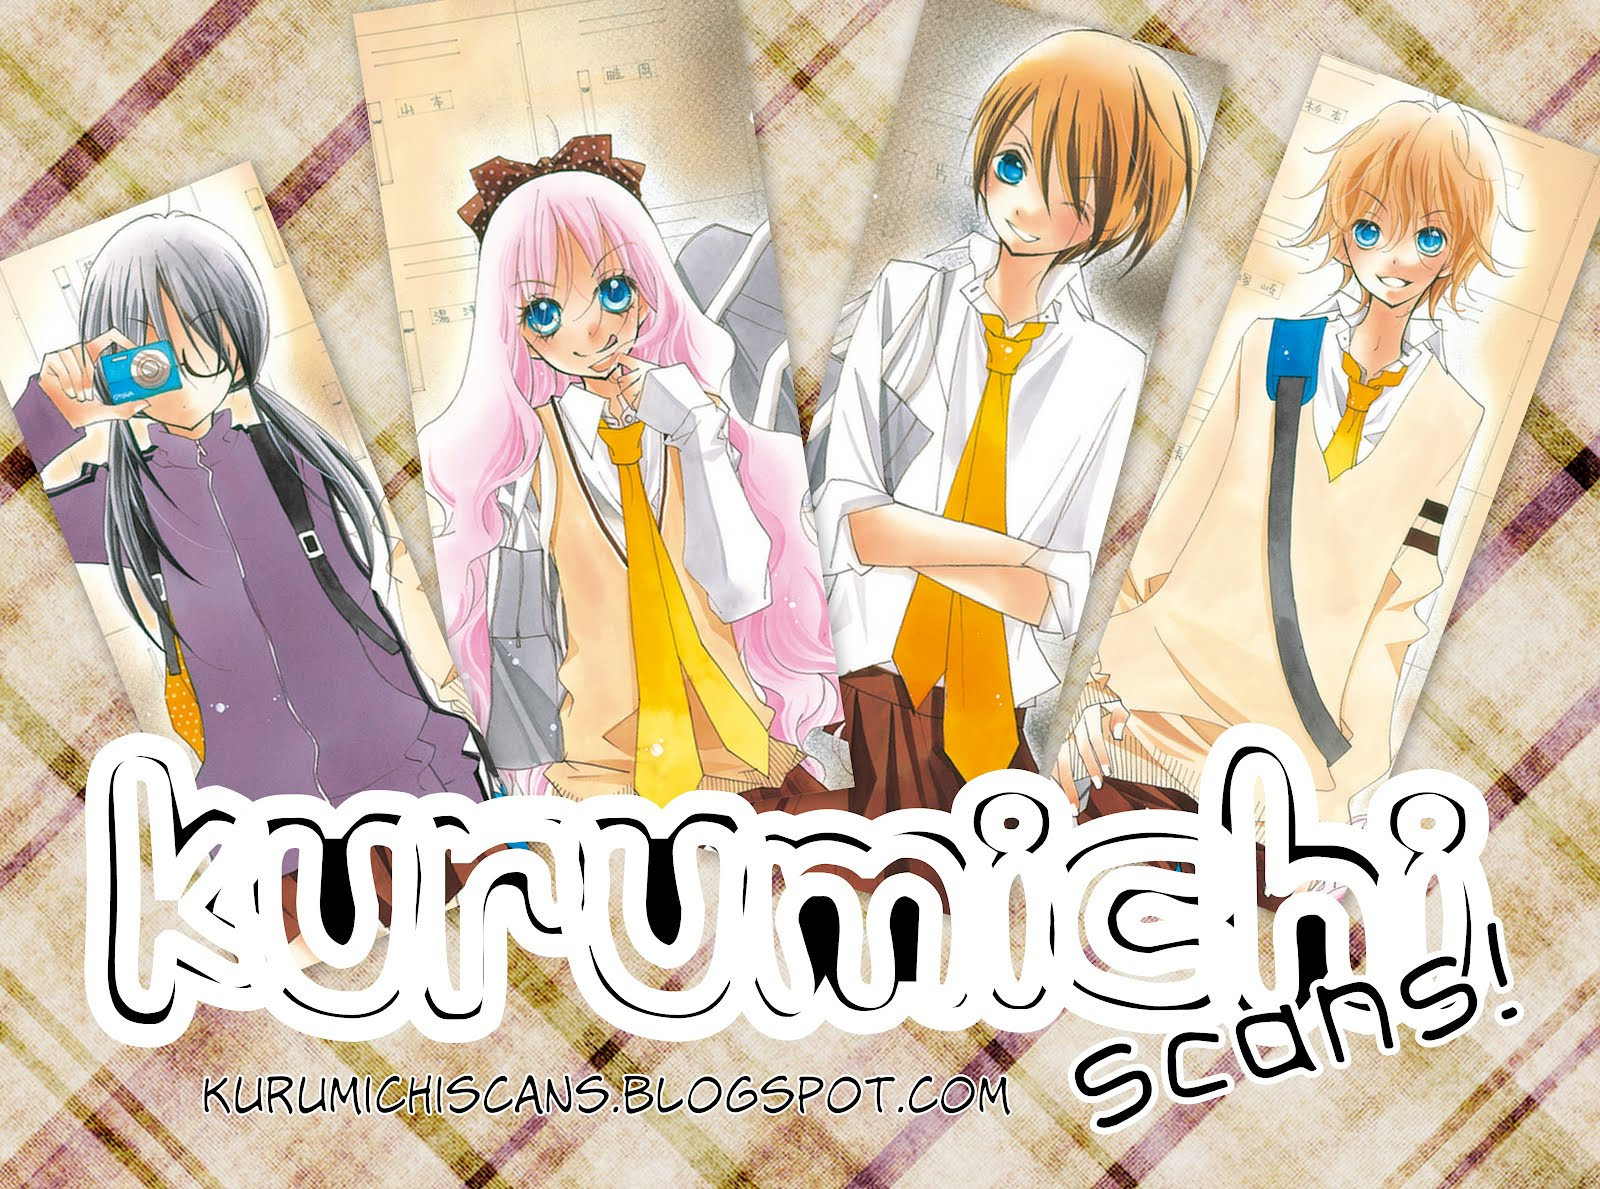 Kurumichi Scanlations